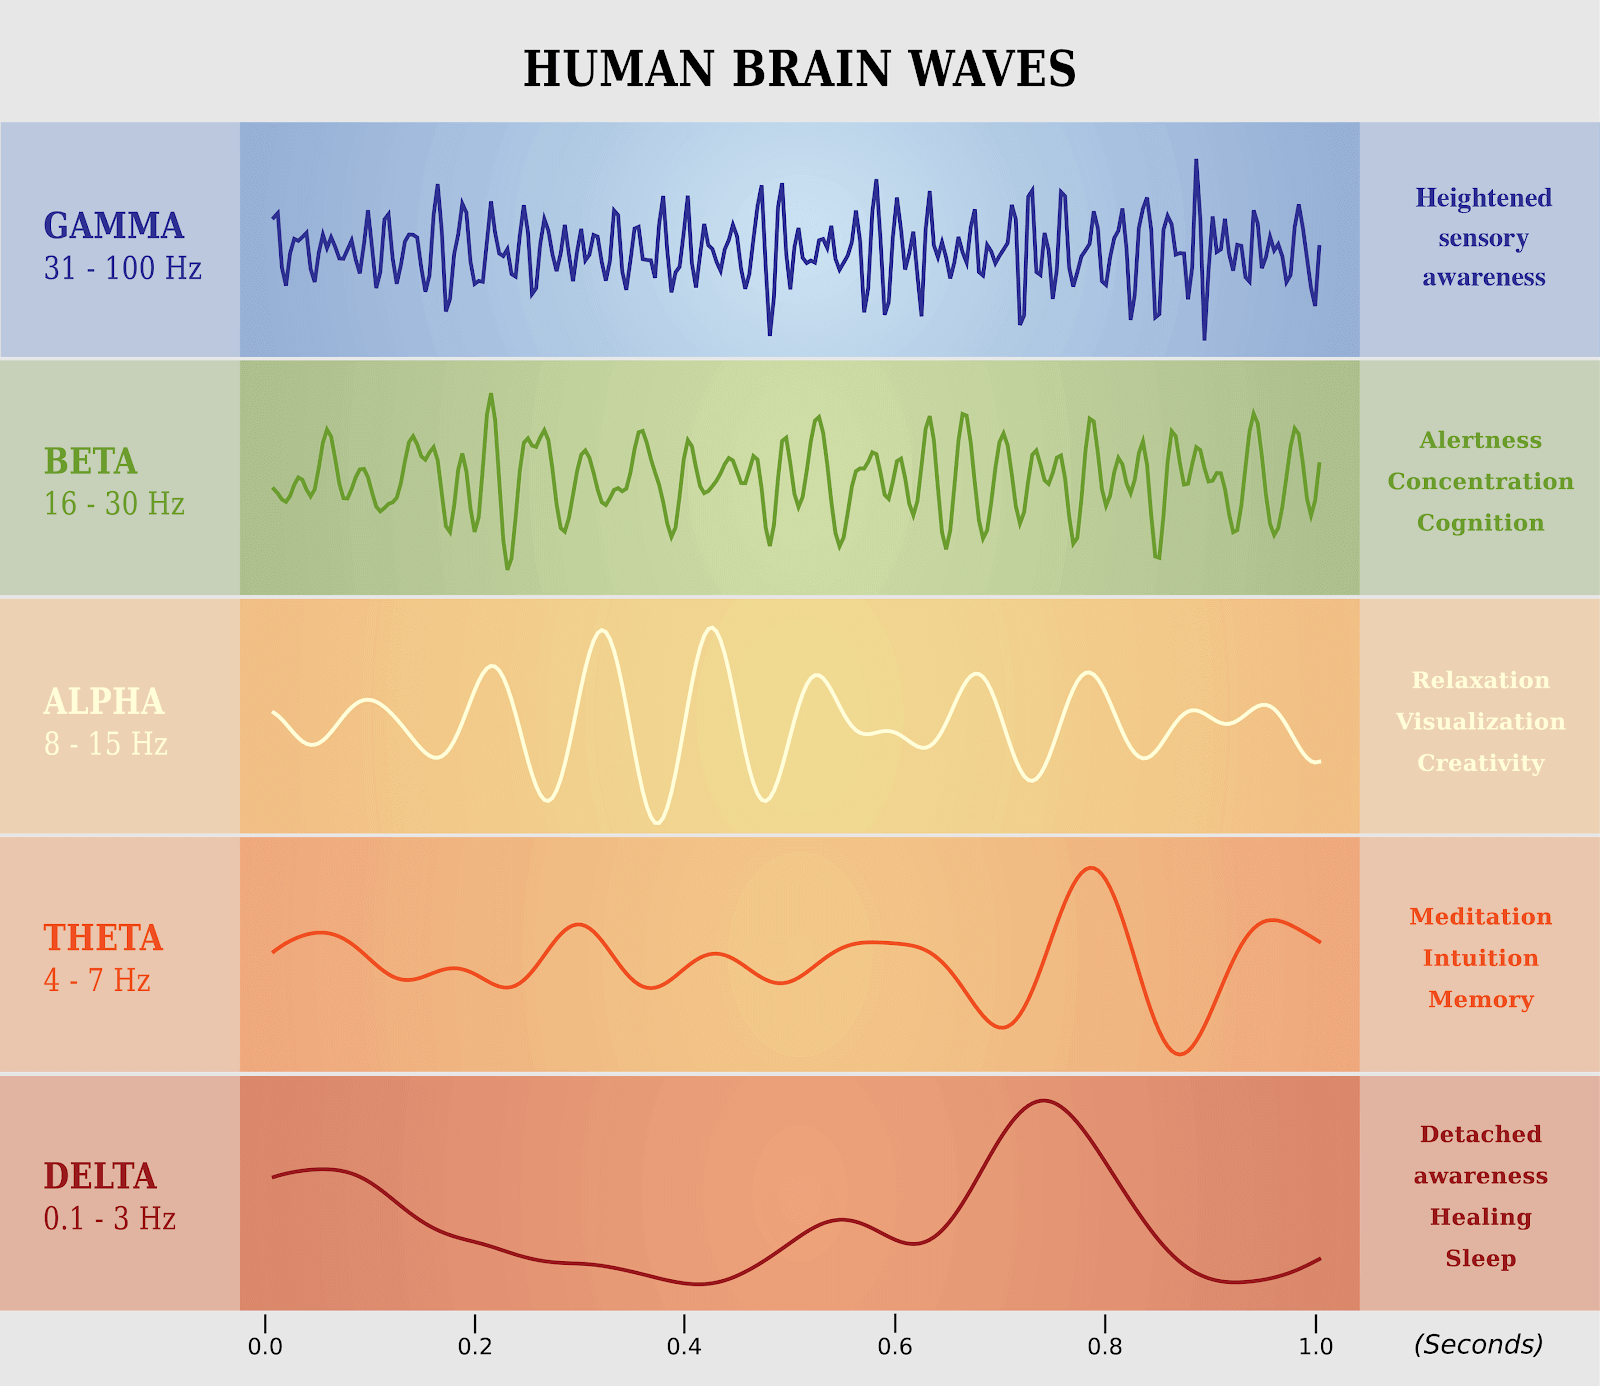 Gamma, Beta, Alpha, Theta, and Delta brainwaves have different functions